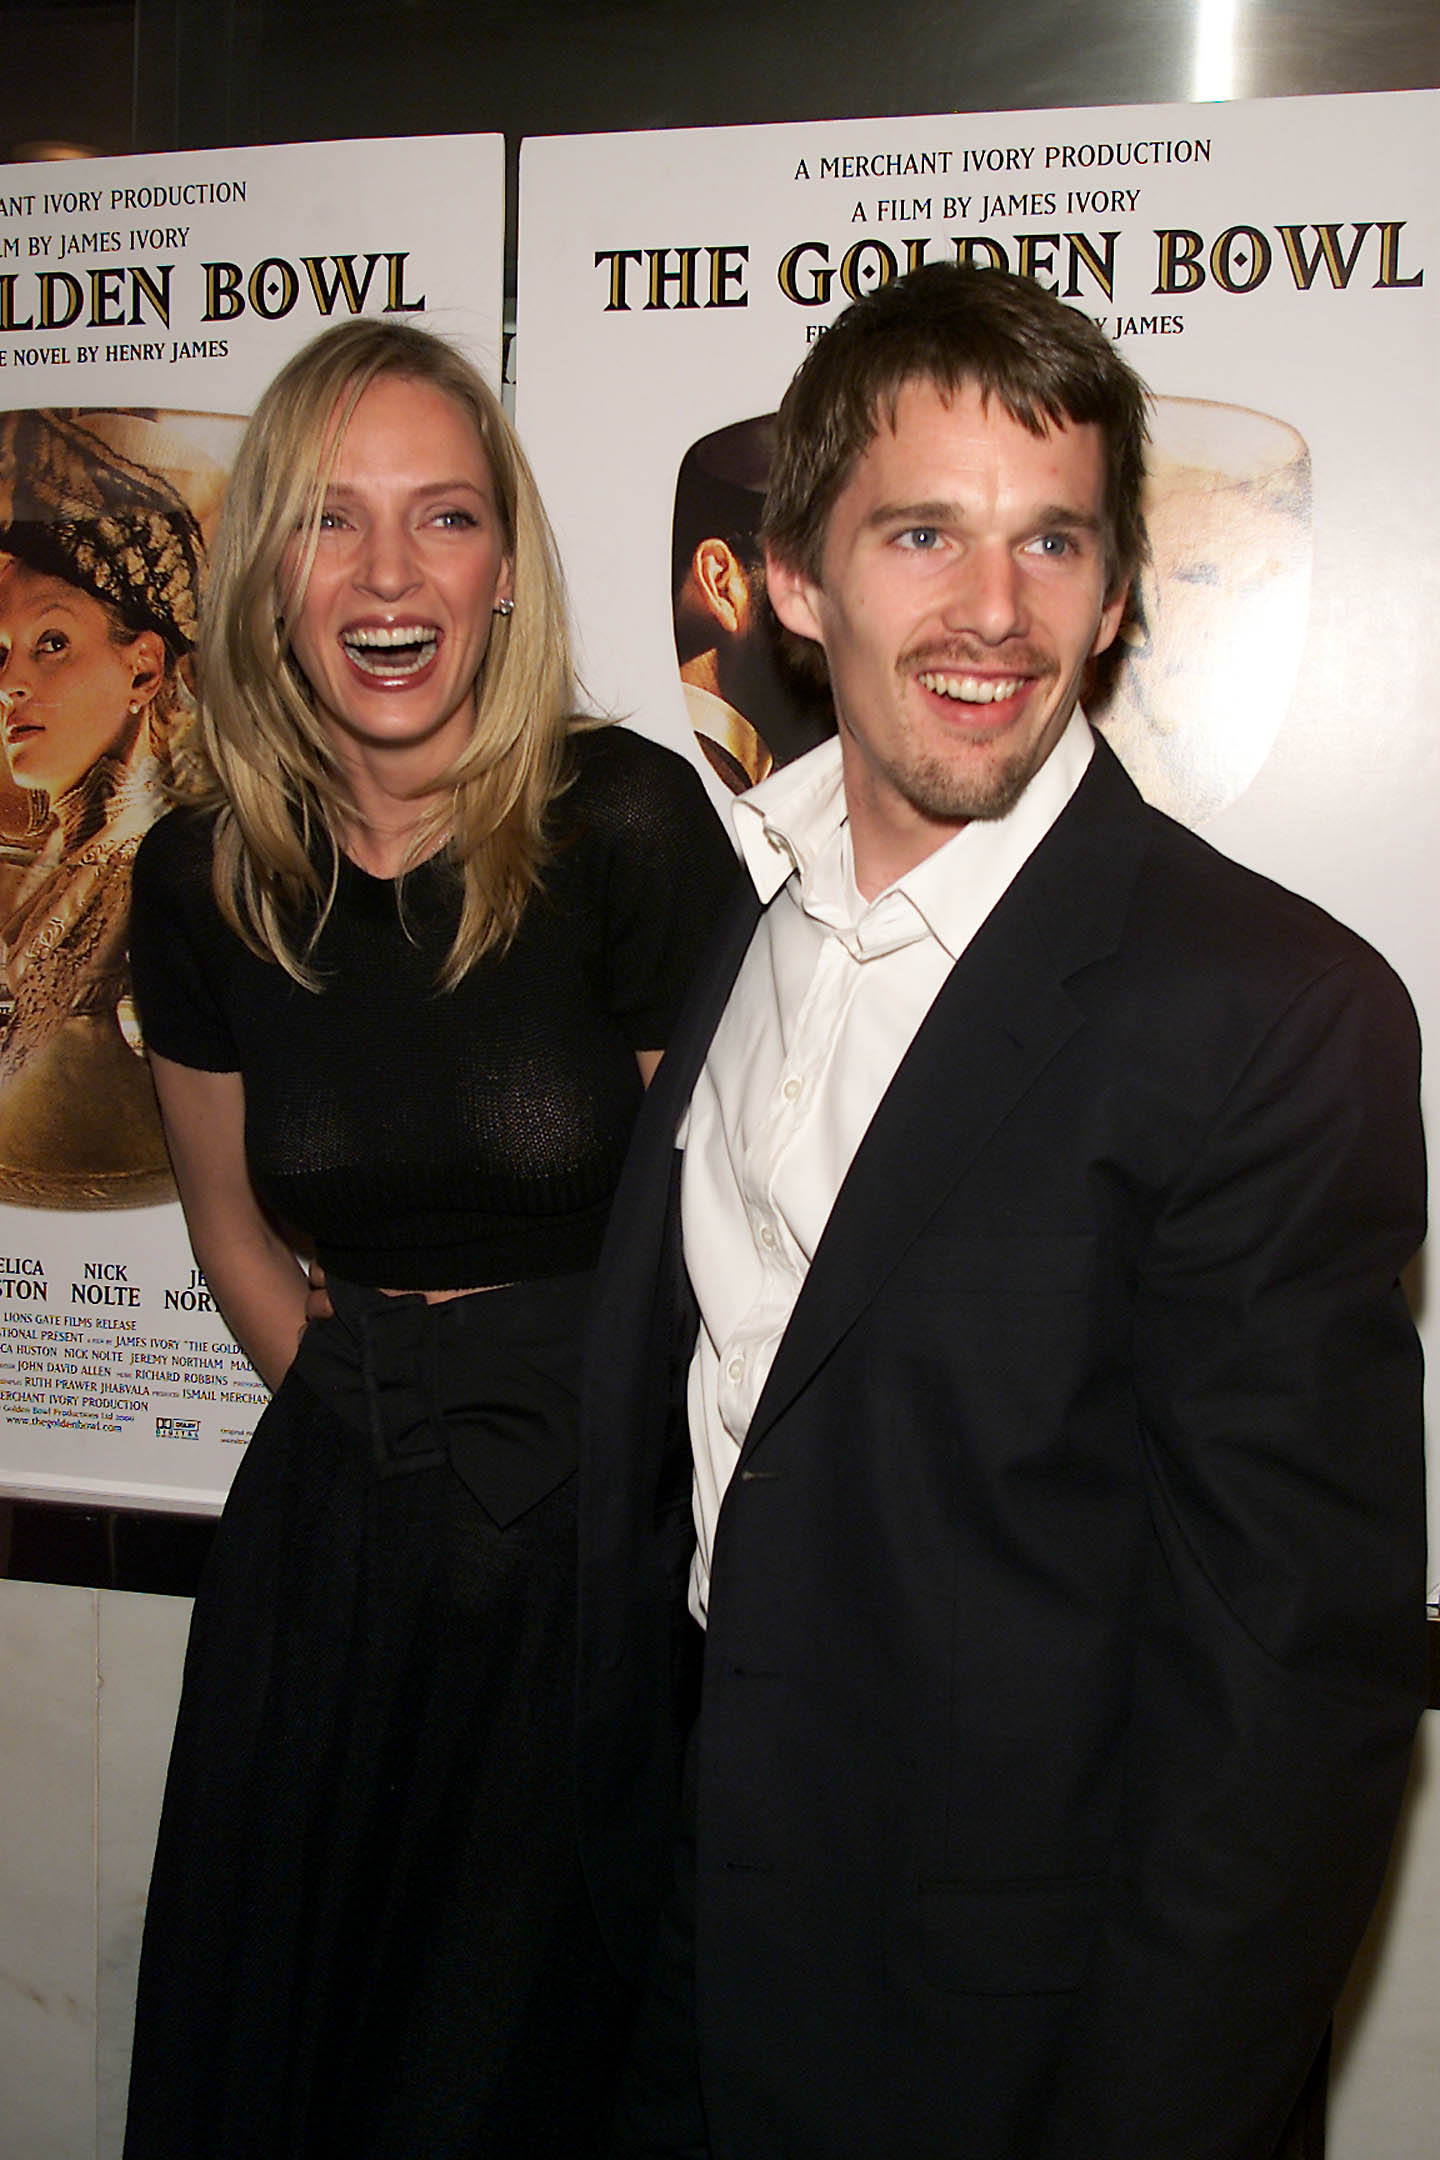 Uma Thurman with husband Ethan Hawke at the New York Premiere of Merchant Ivory's new film 'The Golden Bowl' at the Paris Theater in New York City. 04/24/2001.